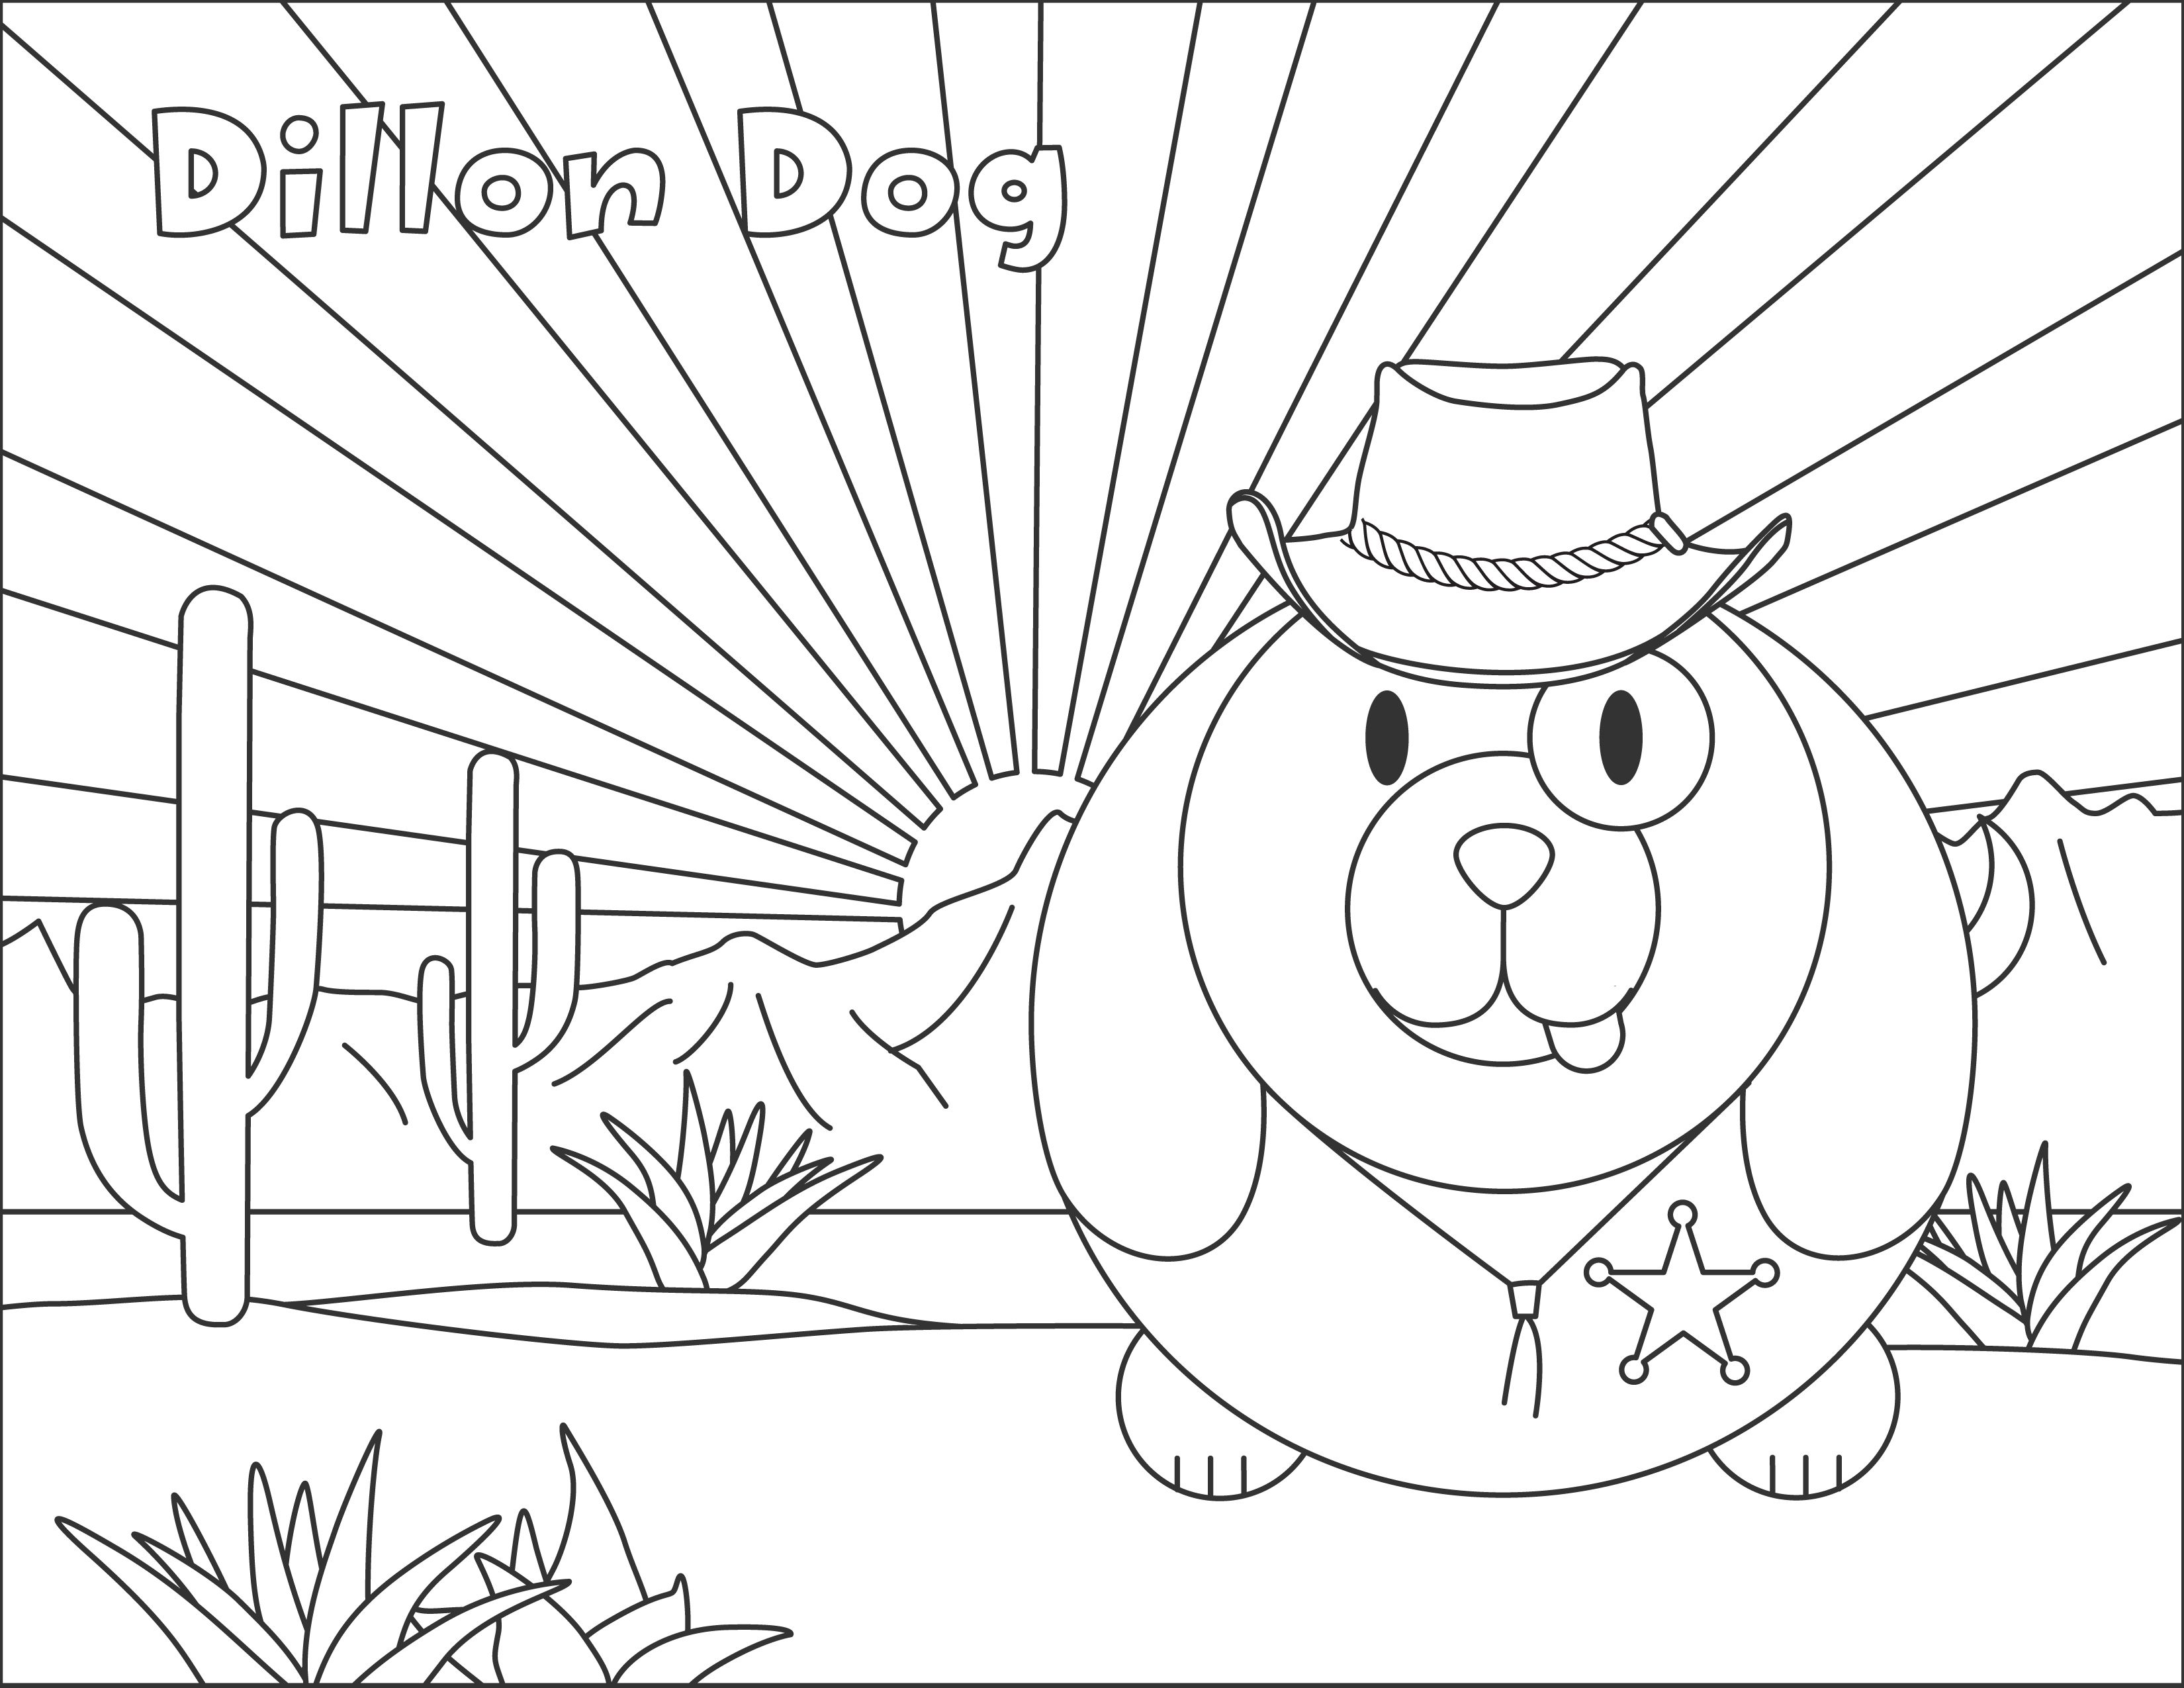 Dillon Dog Bumpidoodle Coloring Page